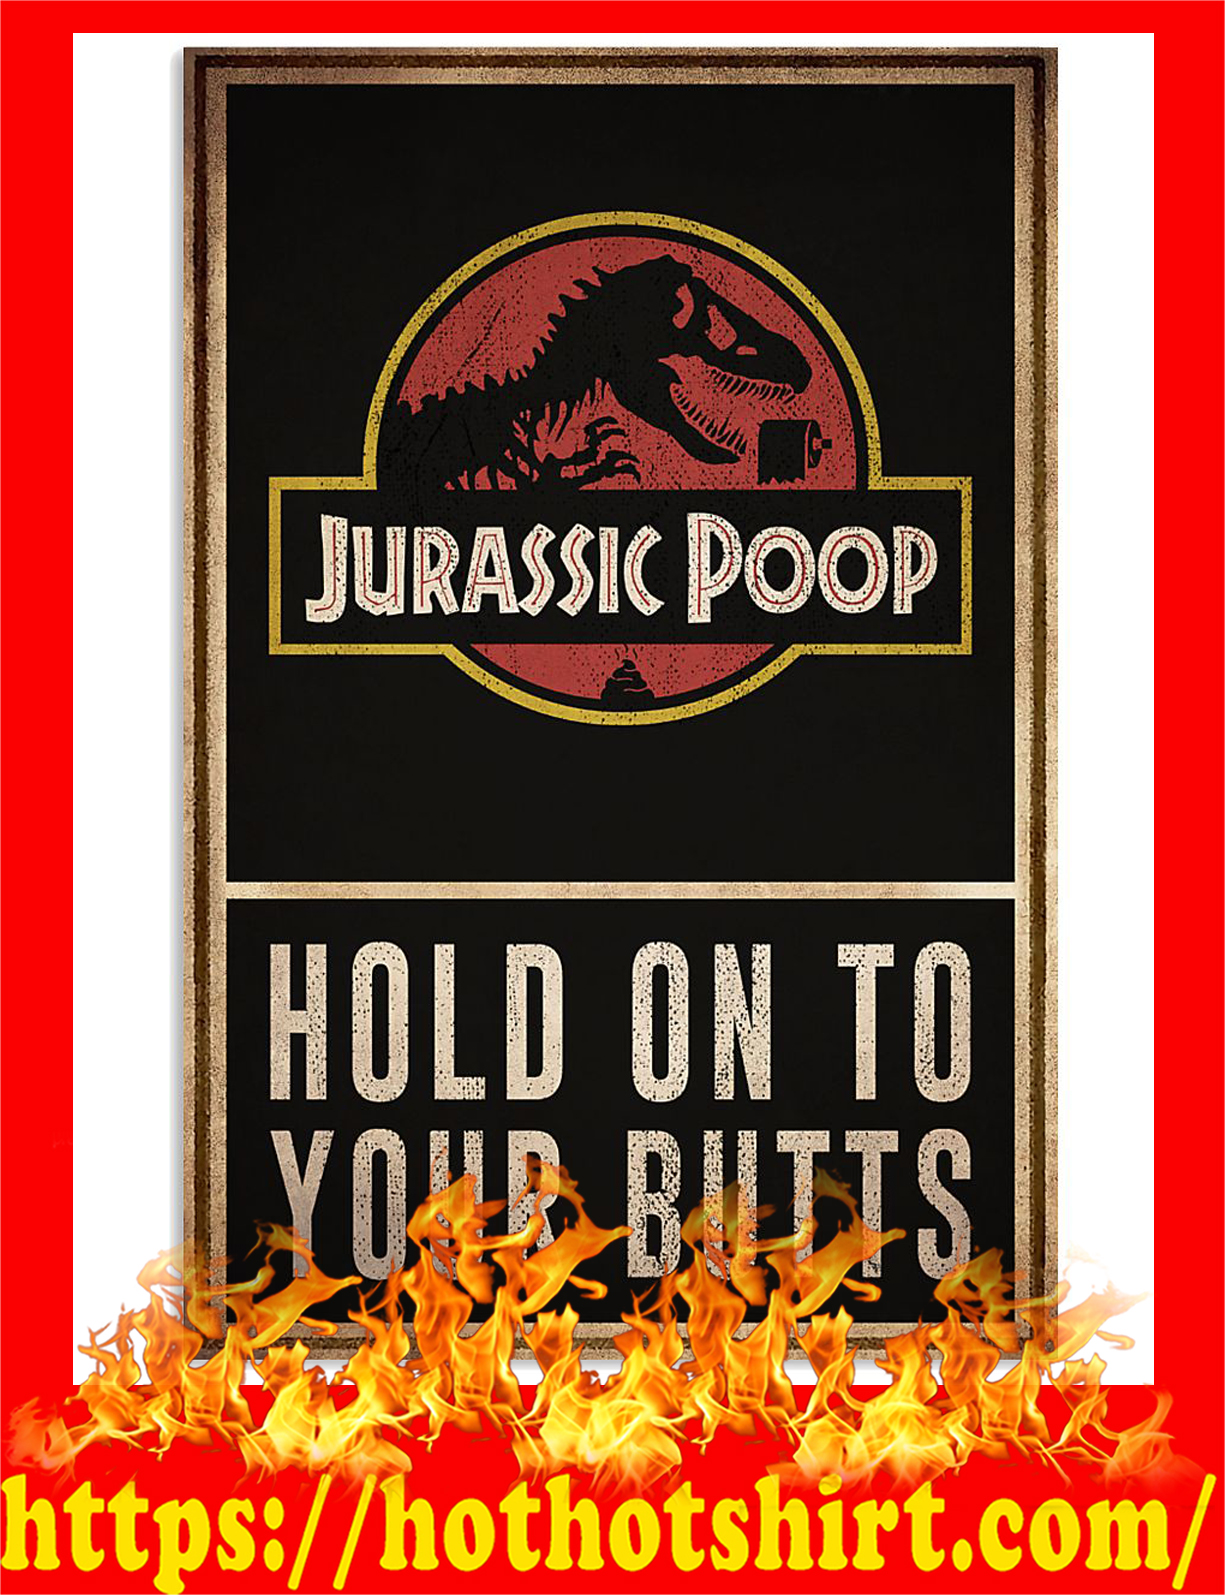 Jurassic poop hold on to your butts poster - Pic 3